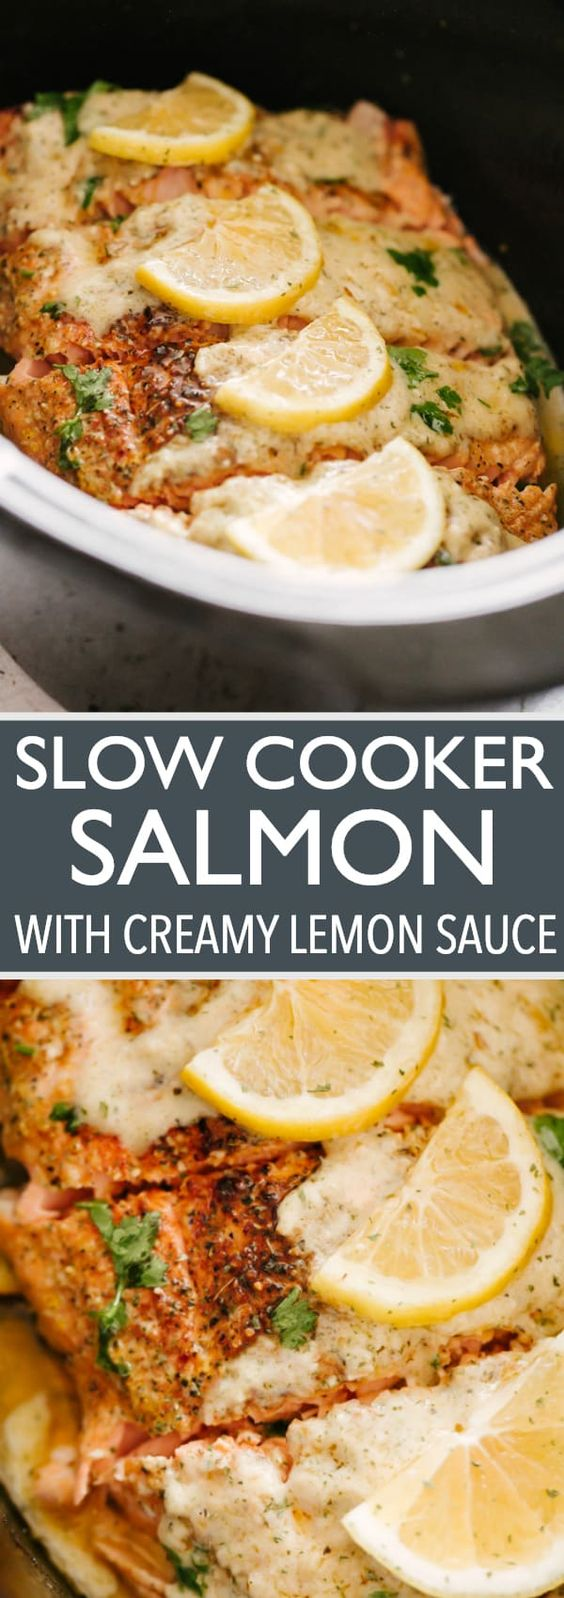 Slow Cooker Salmon with Creamy Lemon Sauce